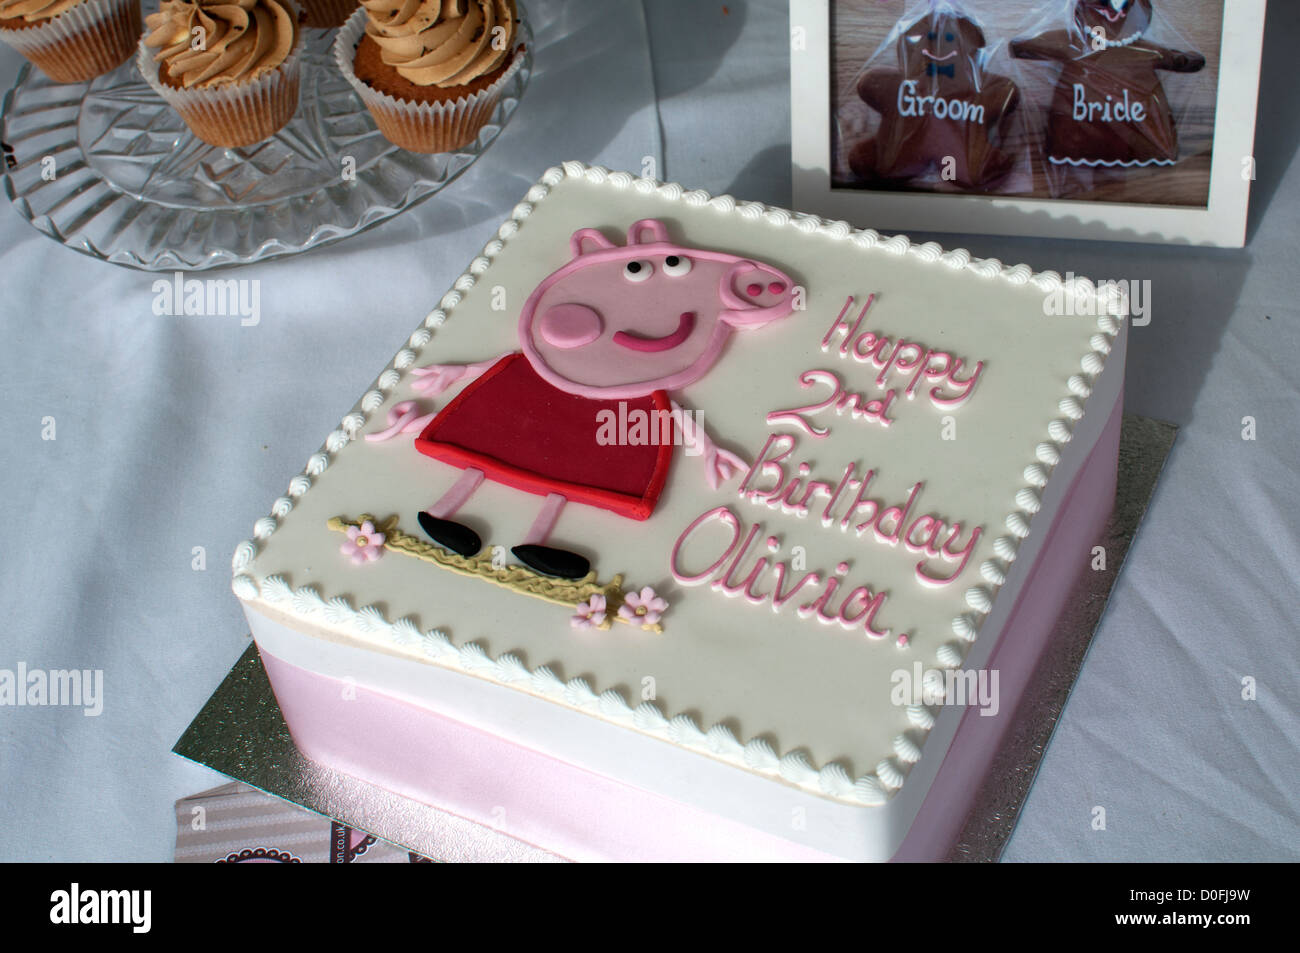 Excellent Peppa Pig Birthday Cake Stock Photo 51974773 Alamy Funny Birthday Cards Online Overcheapnameinfo